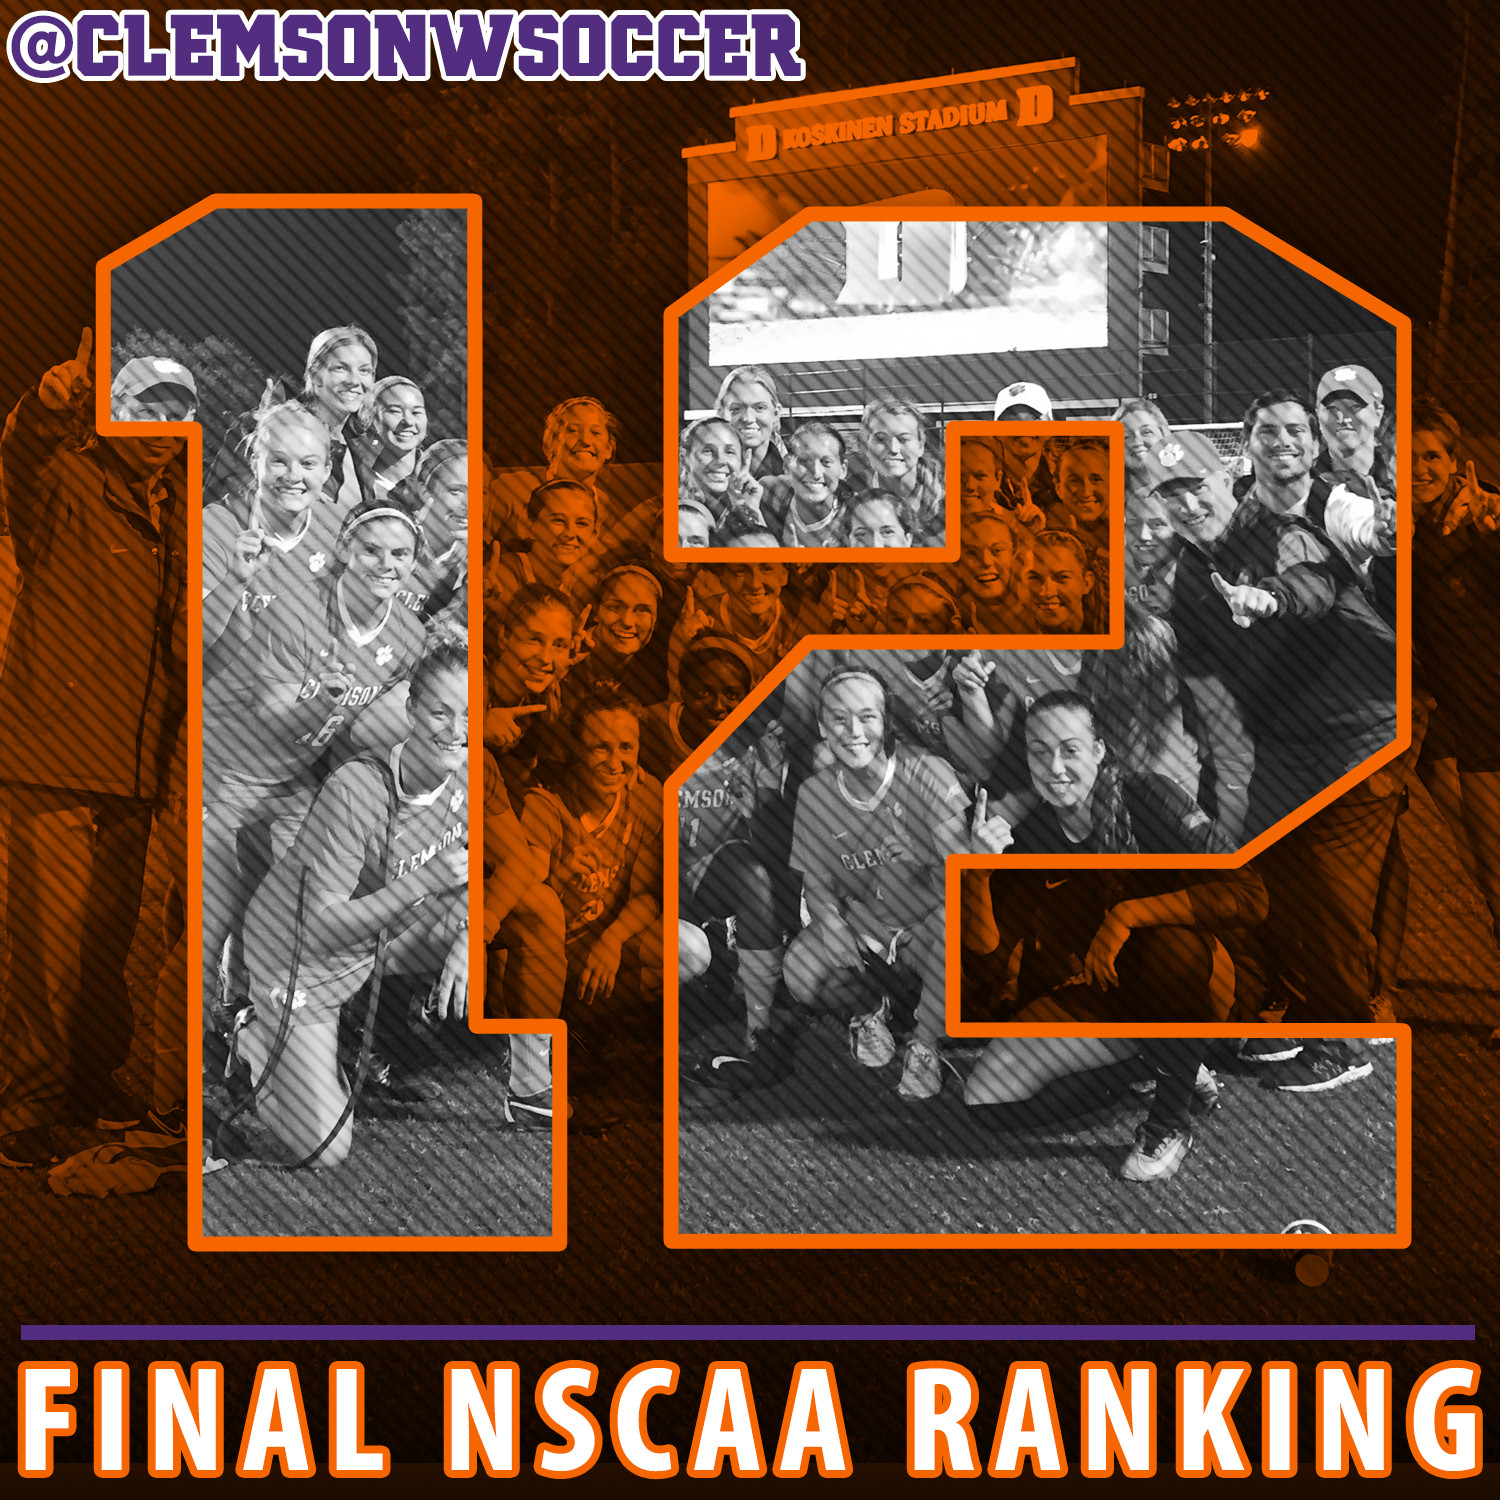 Clemson Ranked 12th in Final NSCAA Poll, Best Finish Since 2001